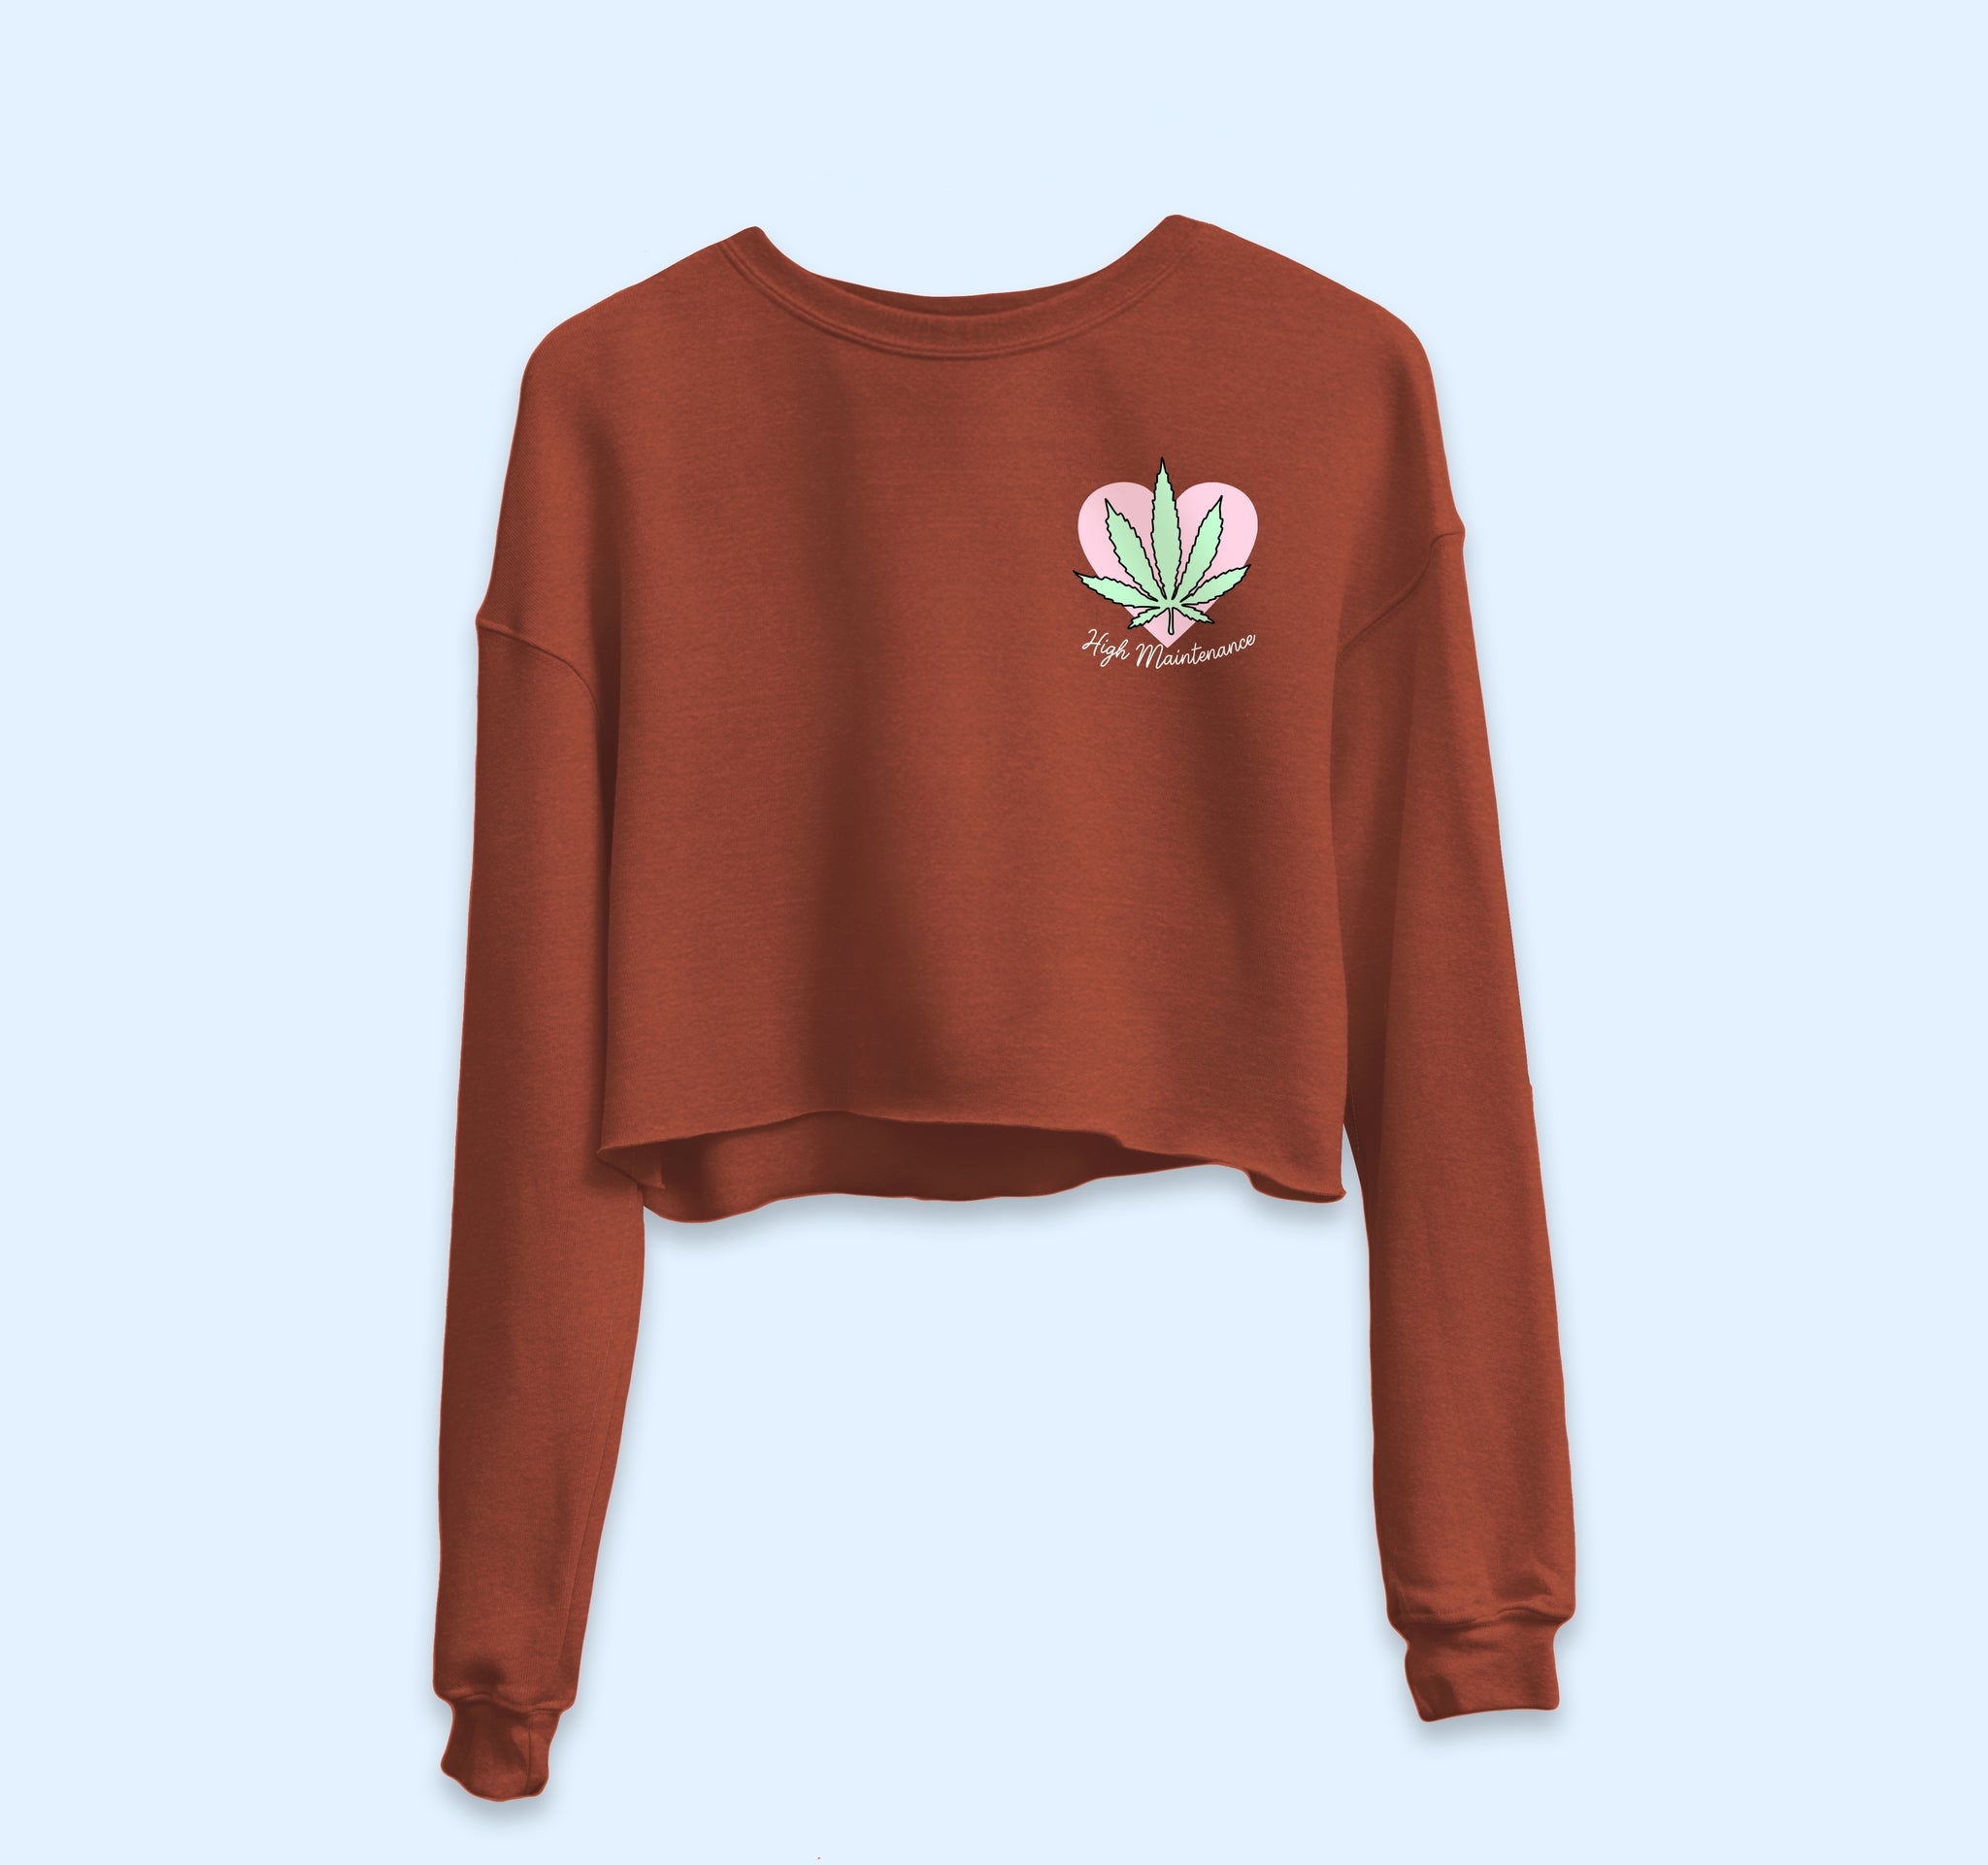 High Maintenance Crop Sweatshirt - HighCiti